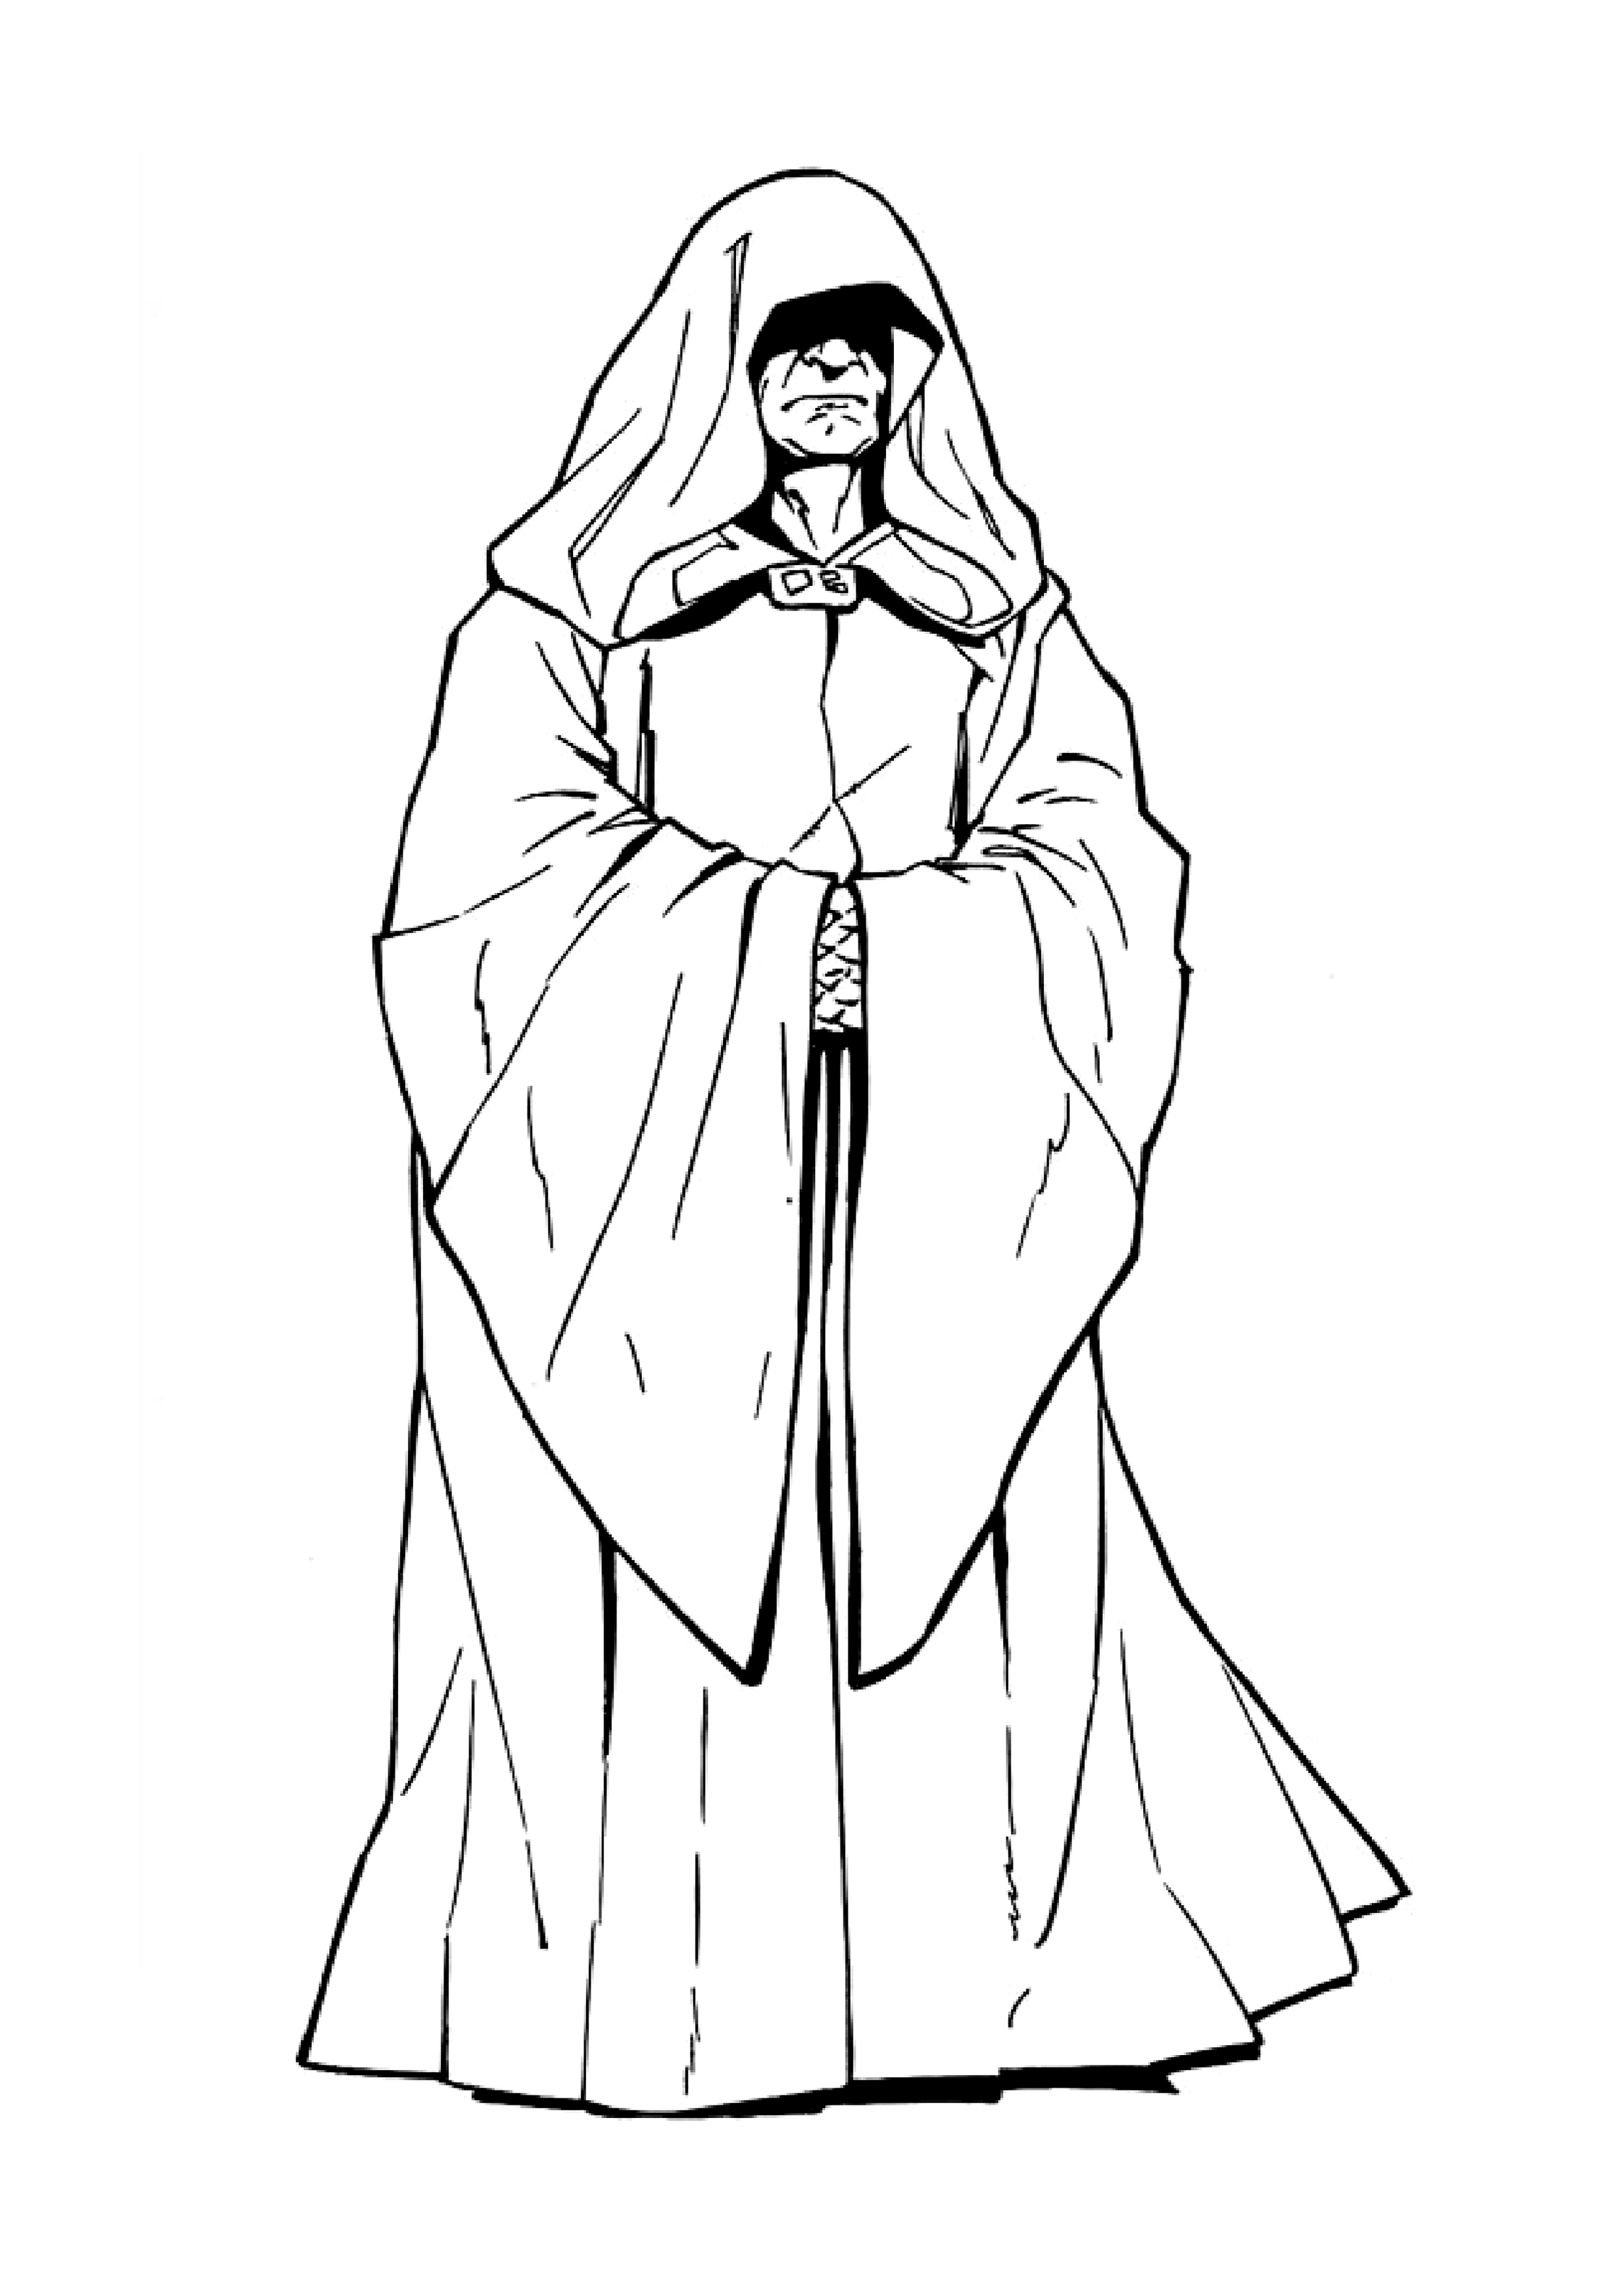 Star Wars Coloring Pages Darth Sidious New Star Wars to Print Of Unique Star Wars Cartoon Characters Coloring Pages Collection to Print